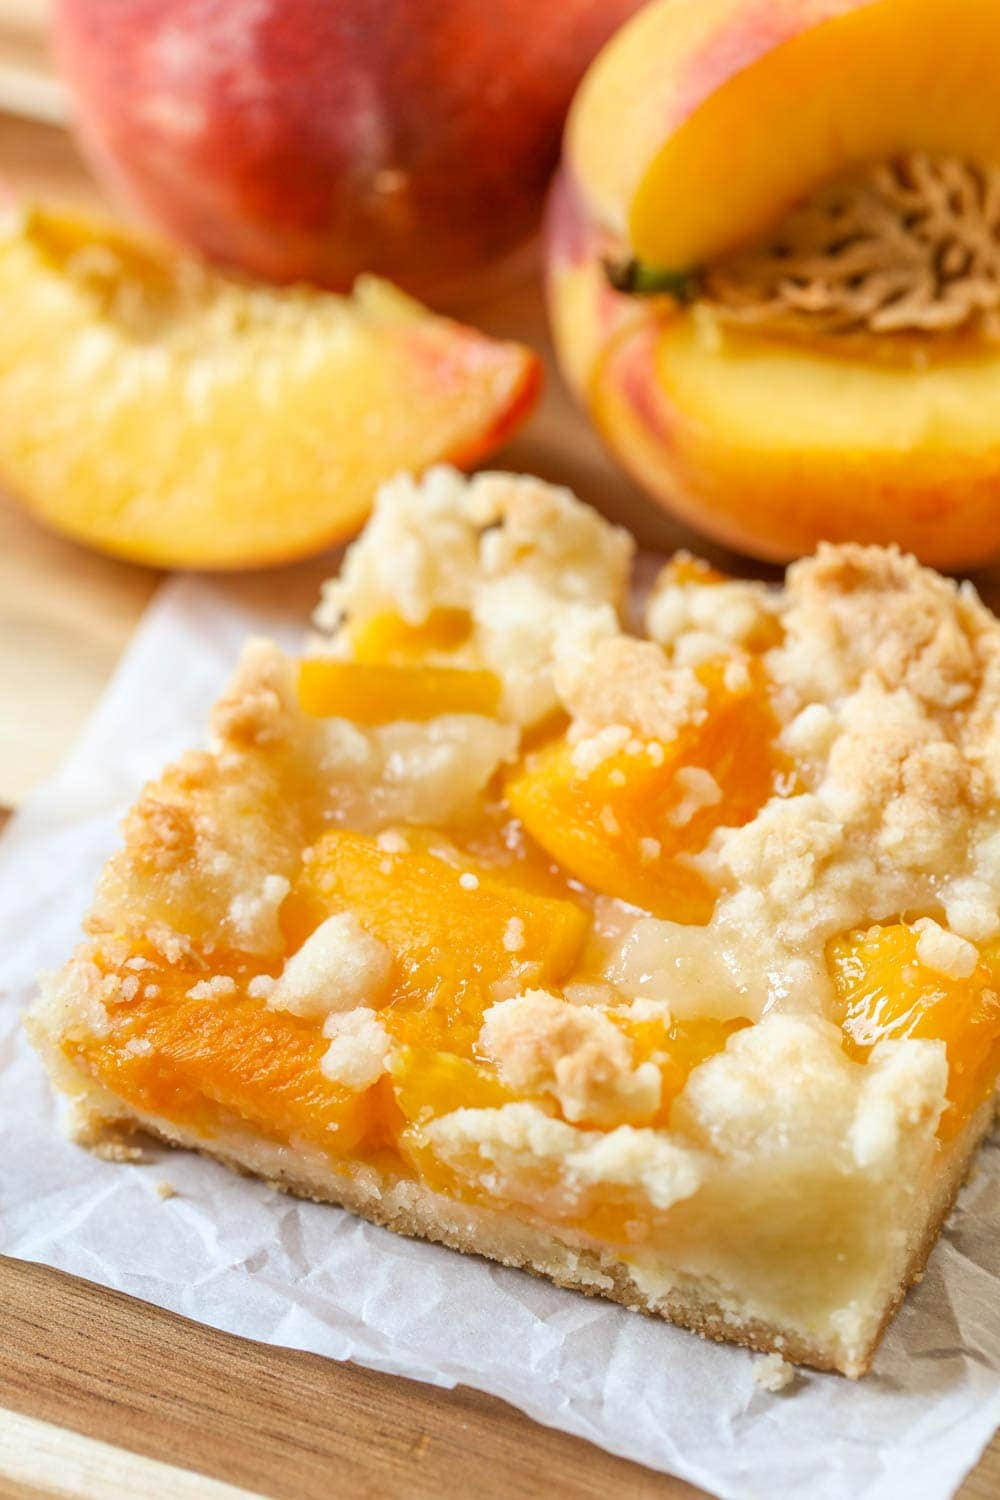 Peach bar recipe